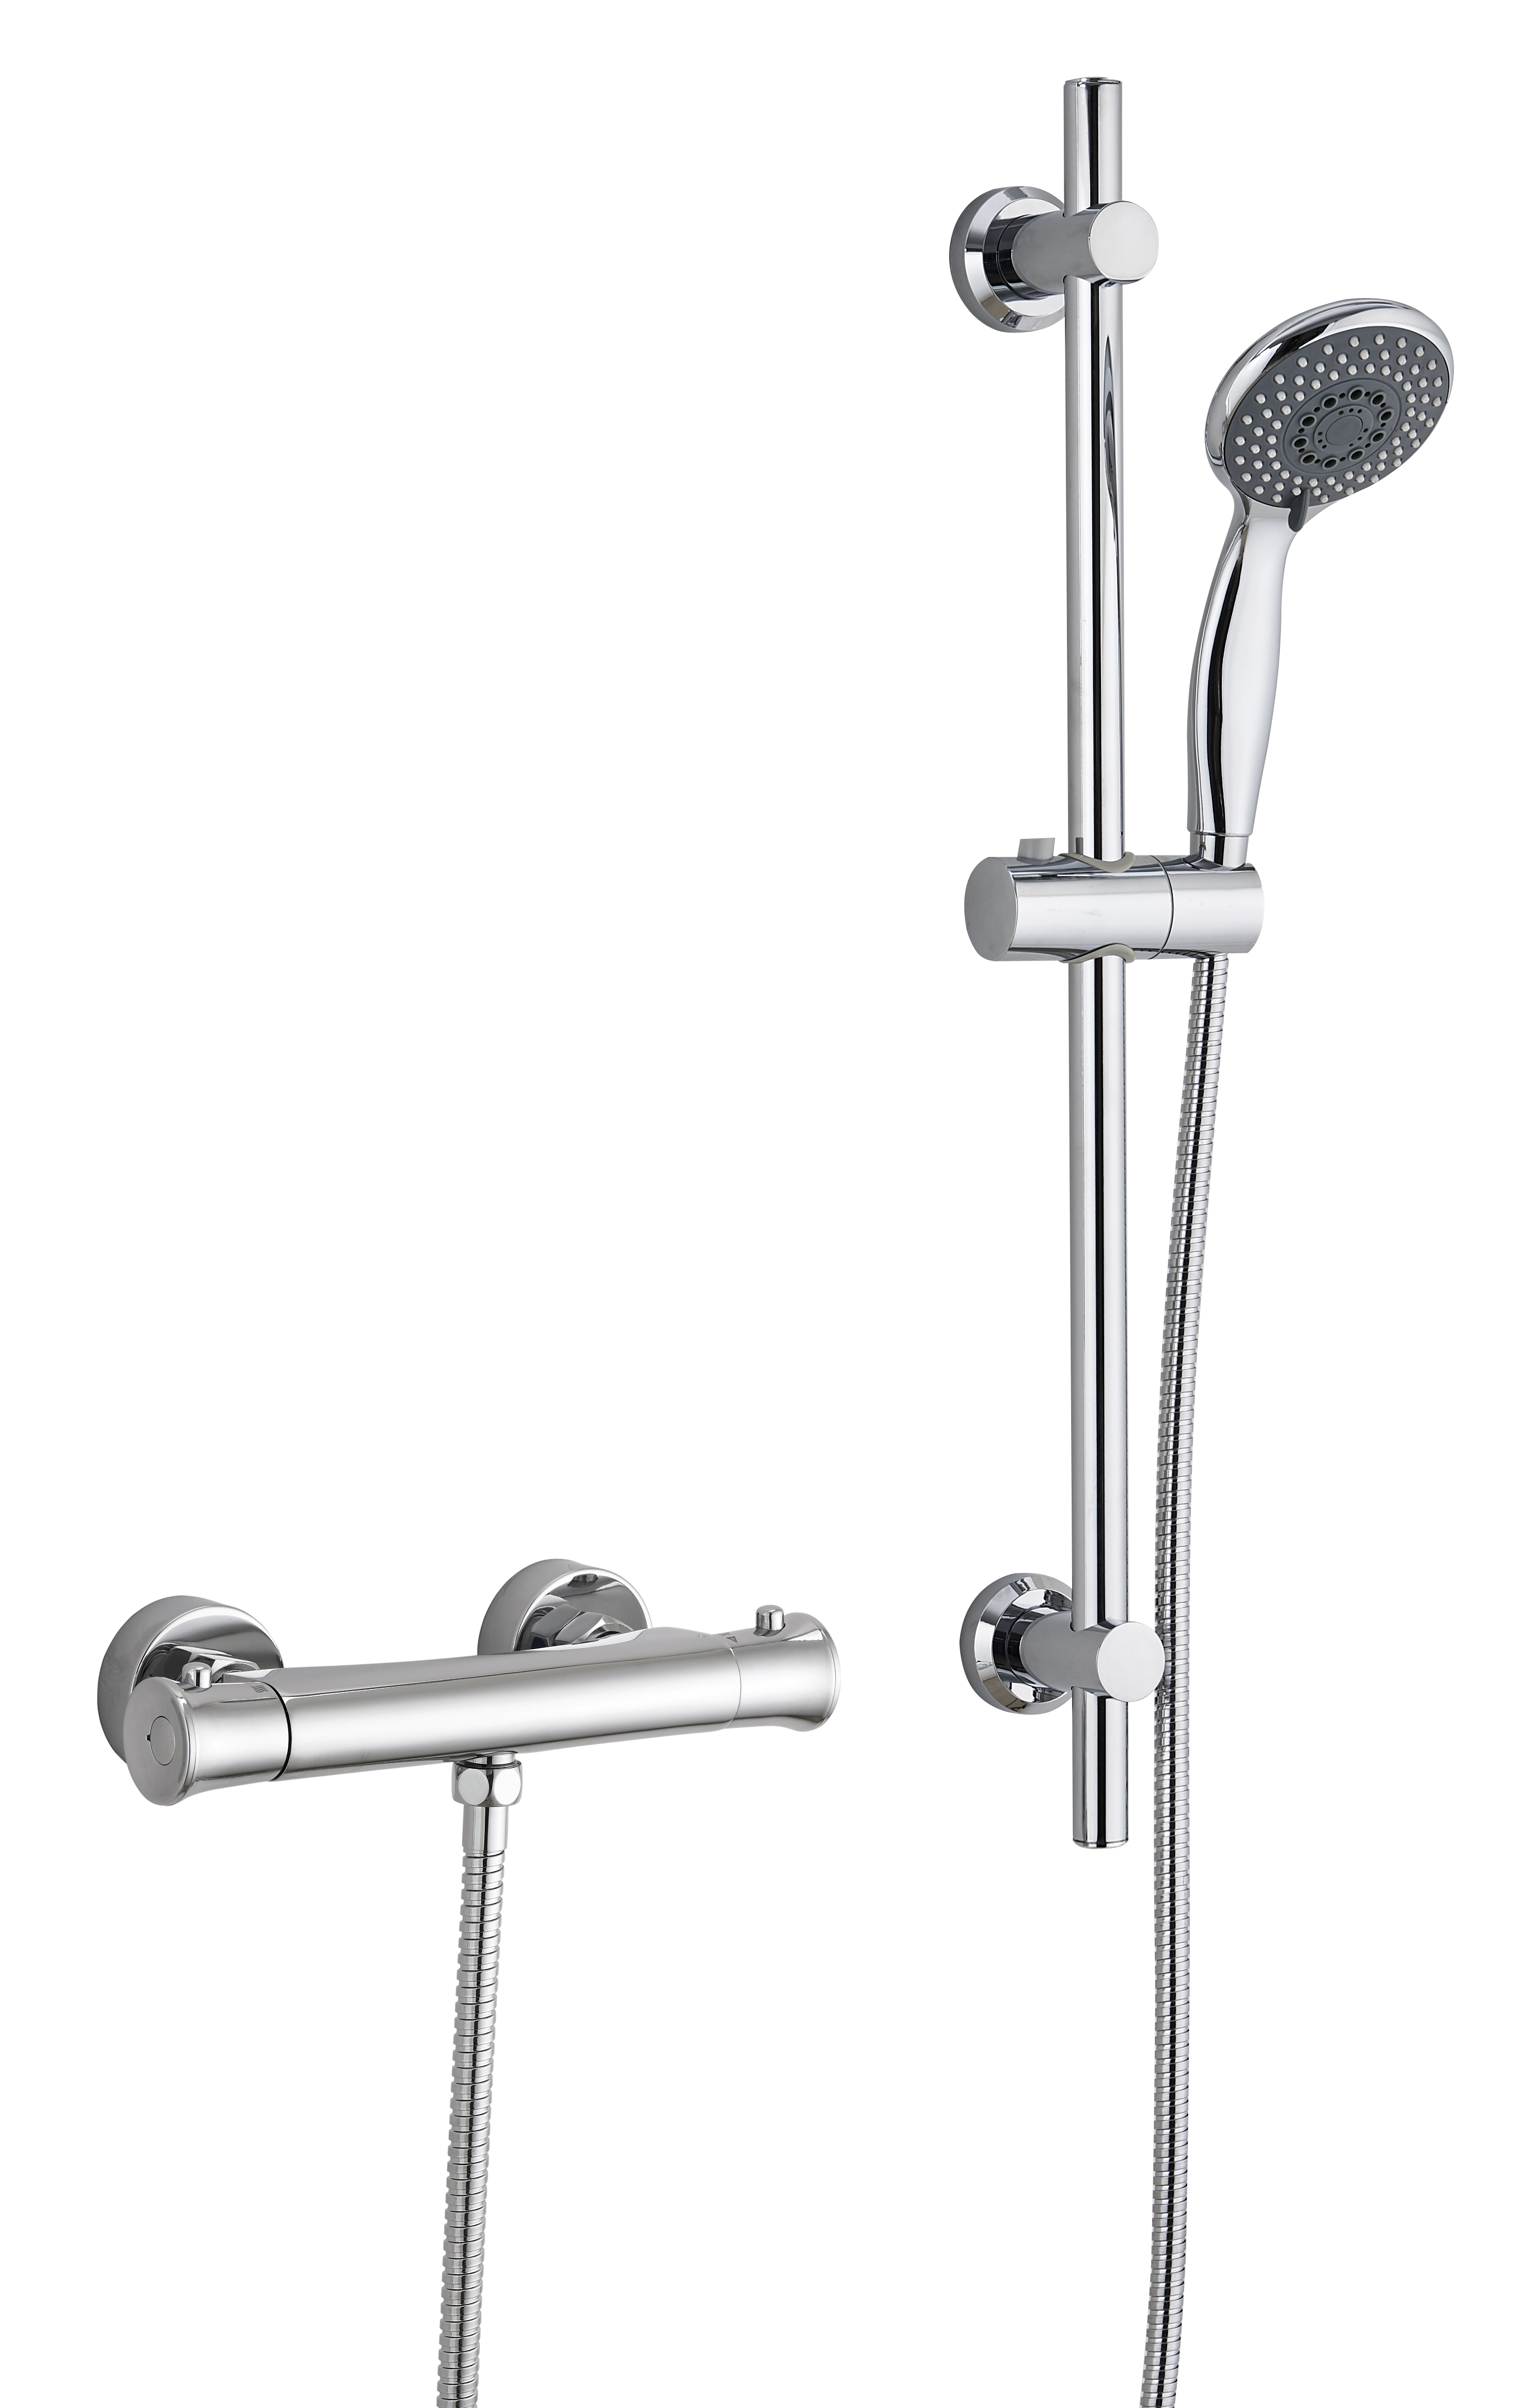 Thermostatic Exposed Shower Bar Valve Mixer Adjustable